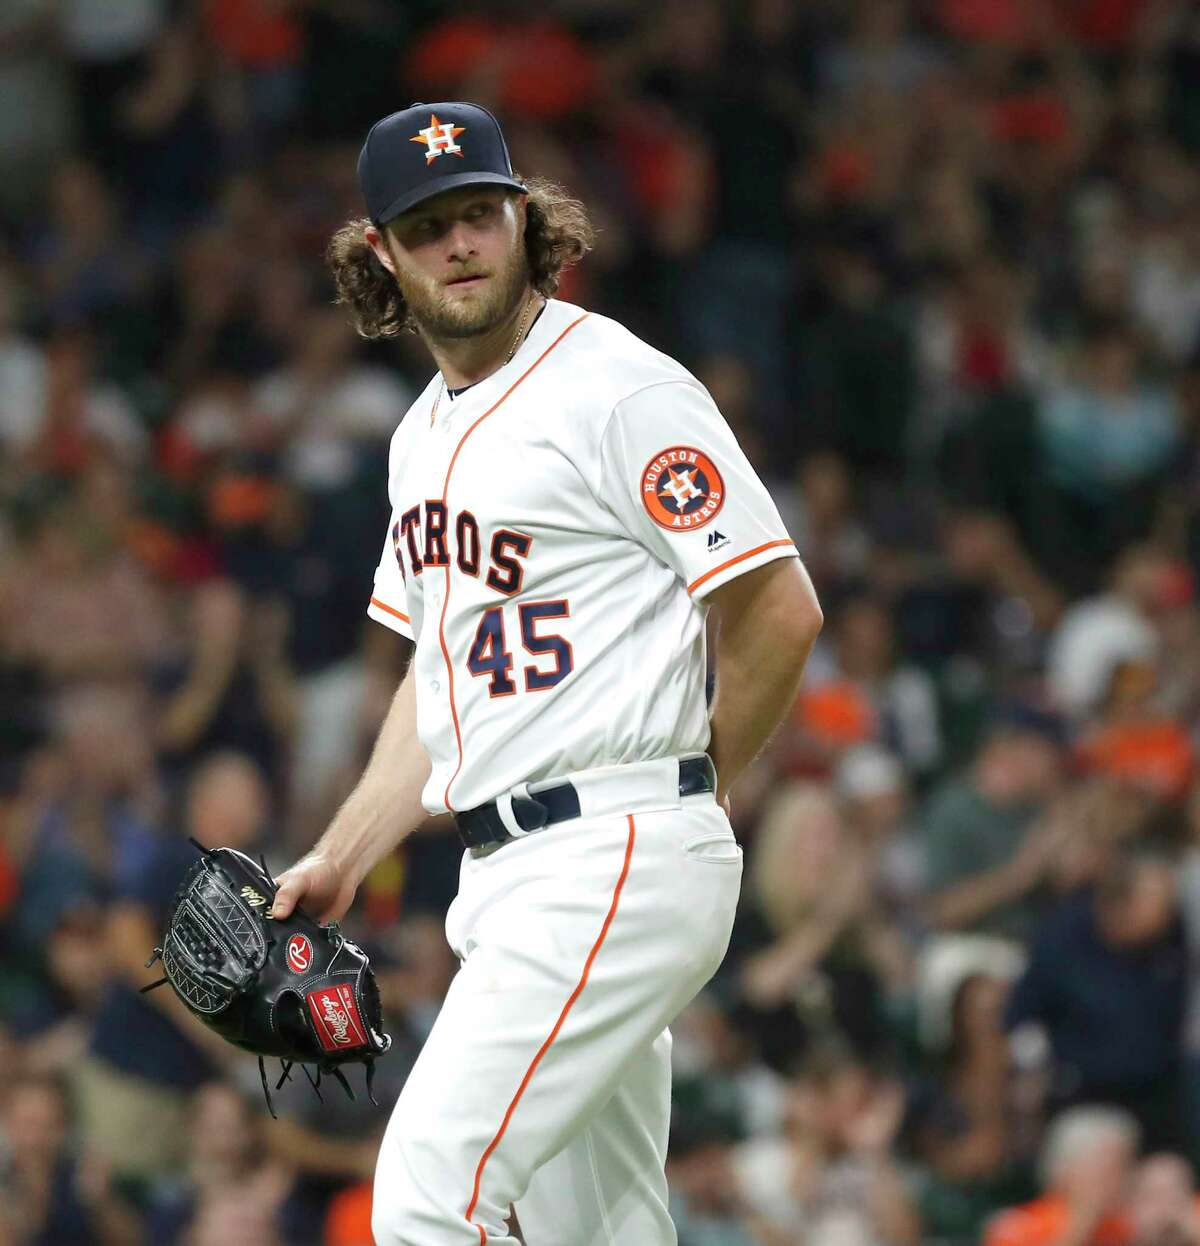 Houston Astros starting pitcher Gerrit Cole (45) as he walks back to the dugout in the eighth inning of an MLB baseball game at Minute Maid Park, Wednesday, Sept. 18, 2019, in Houston.